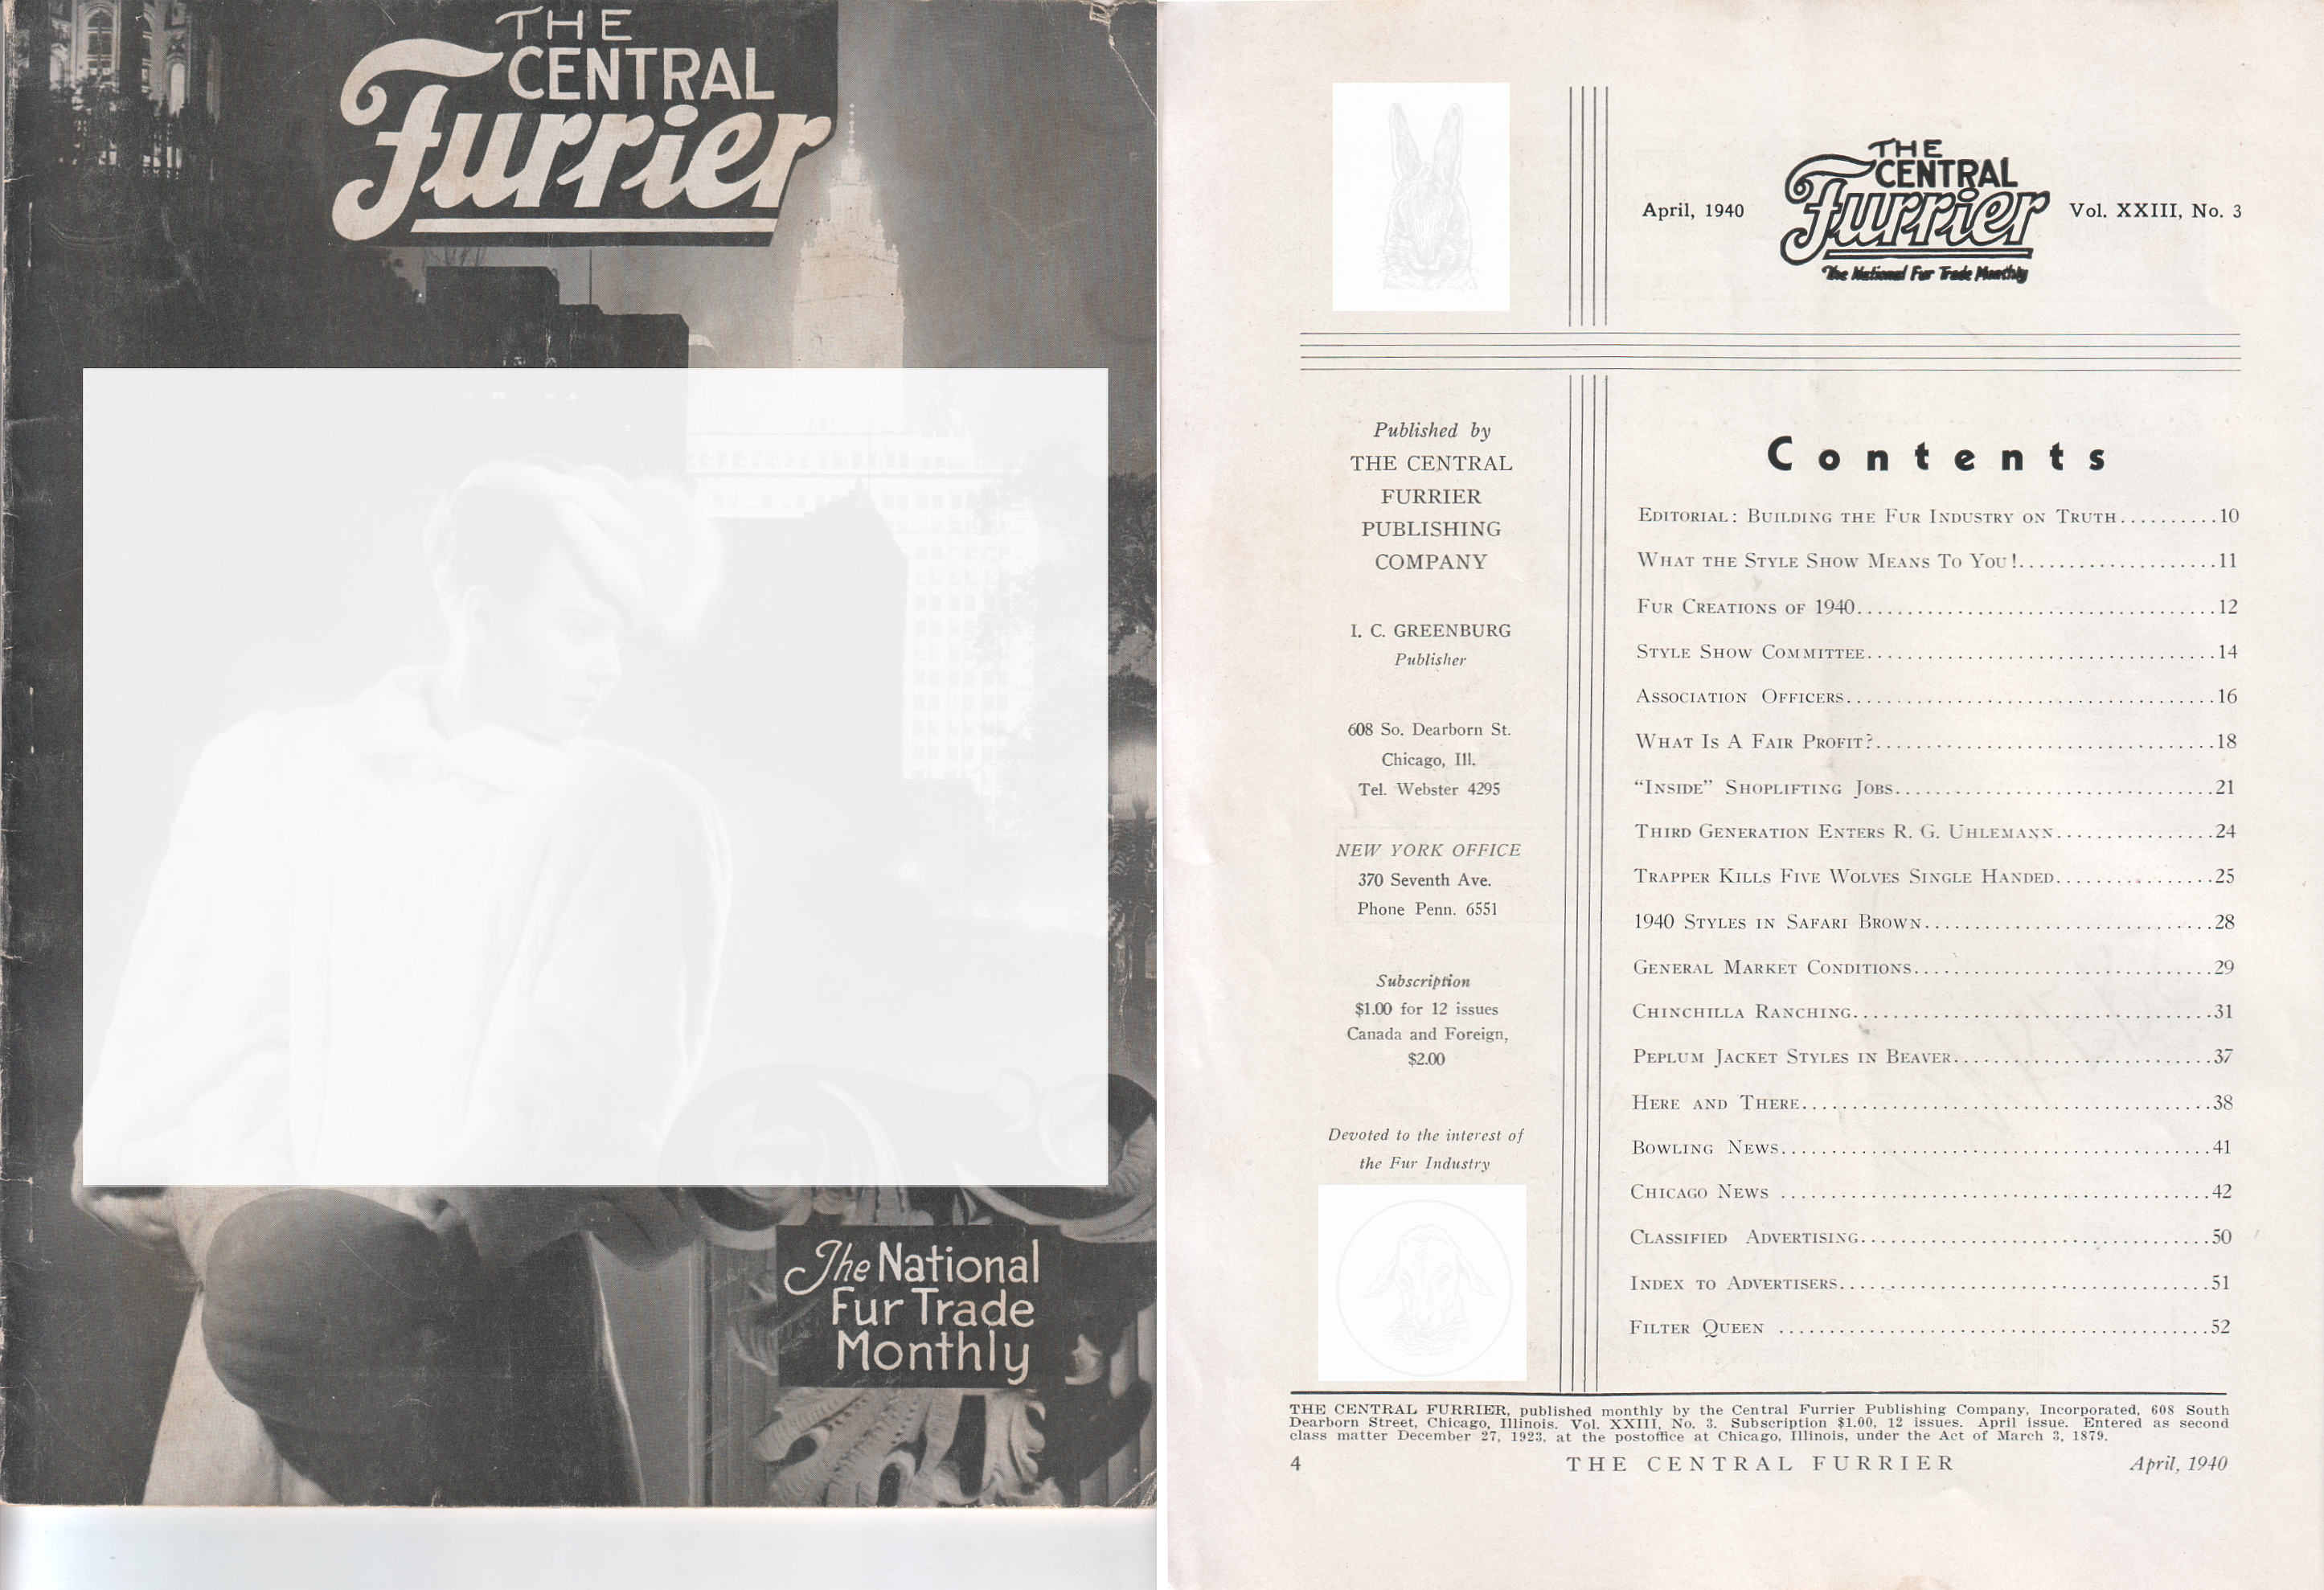 File:The Central Furrier   The National Fur Trade Monthly, Chicago, April  1940